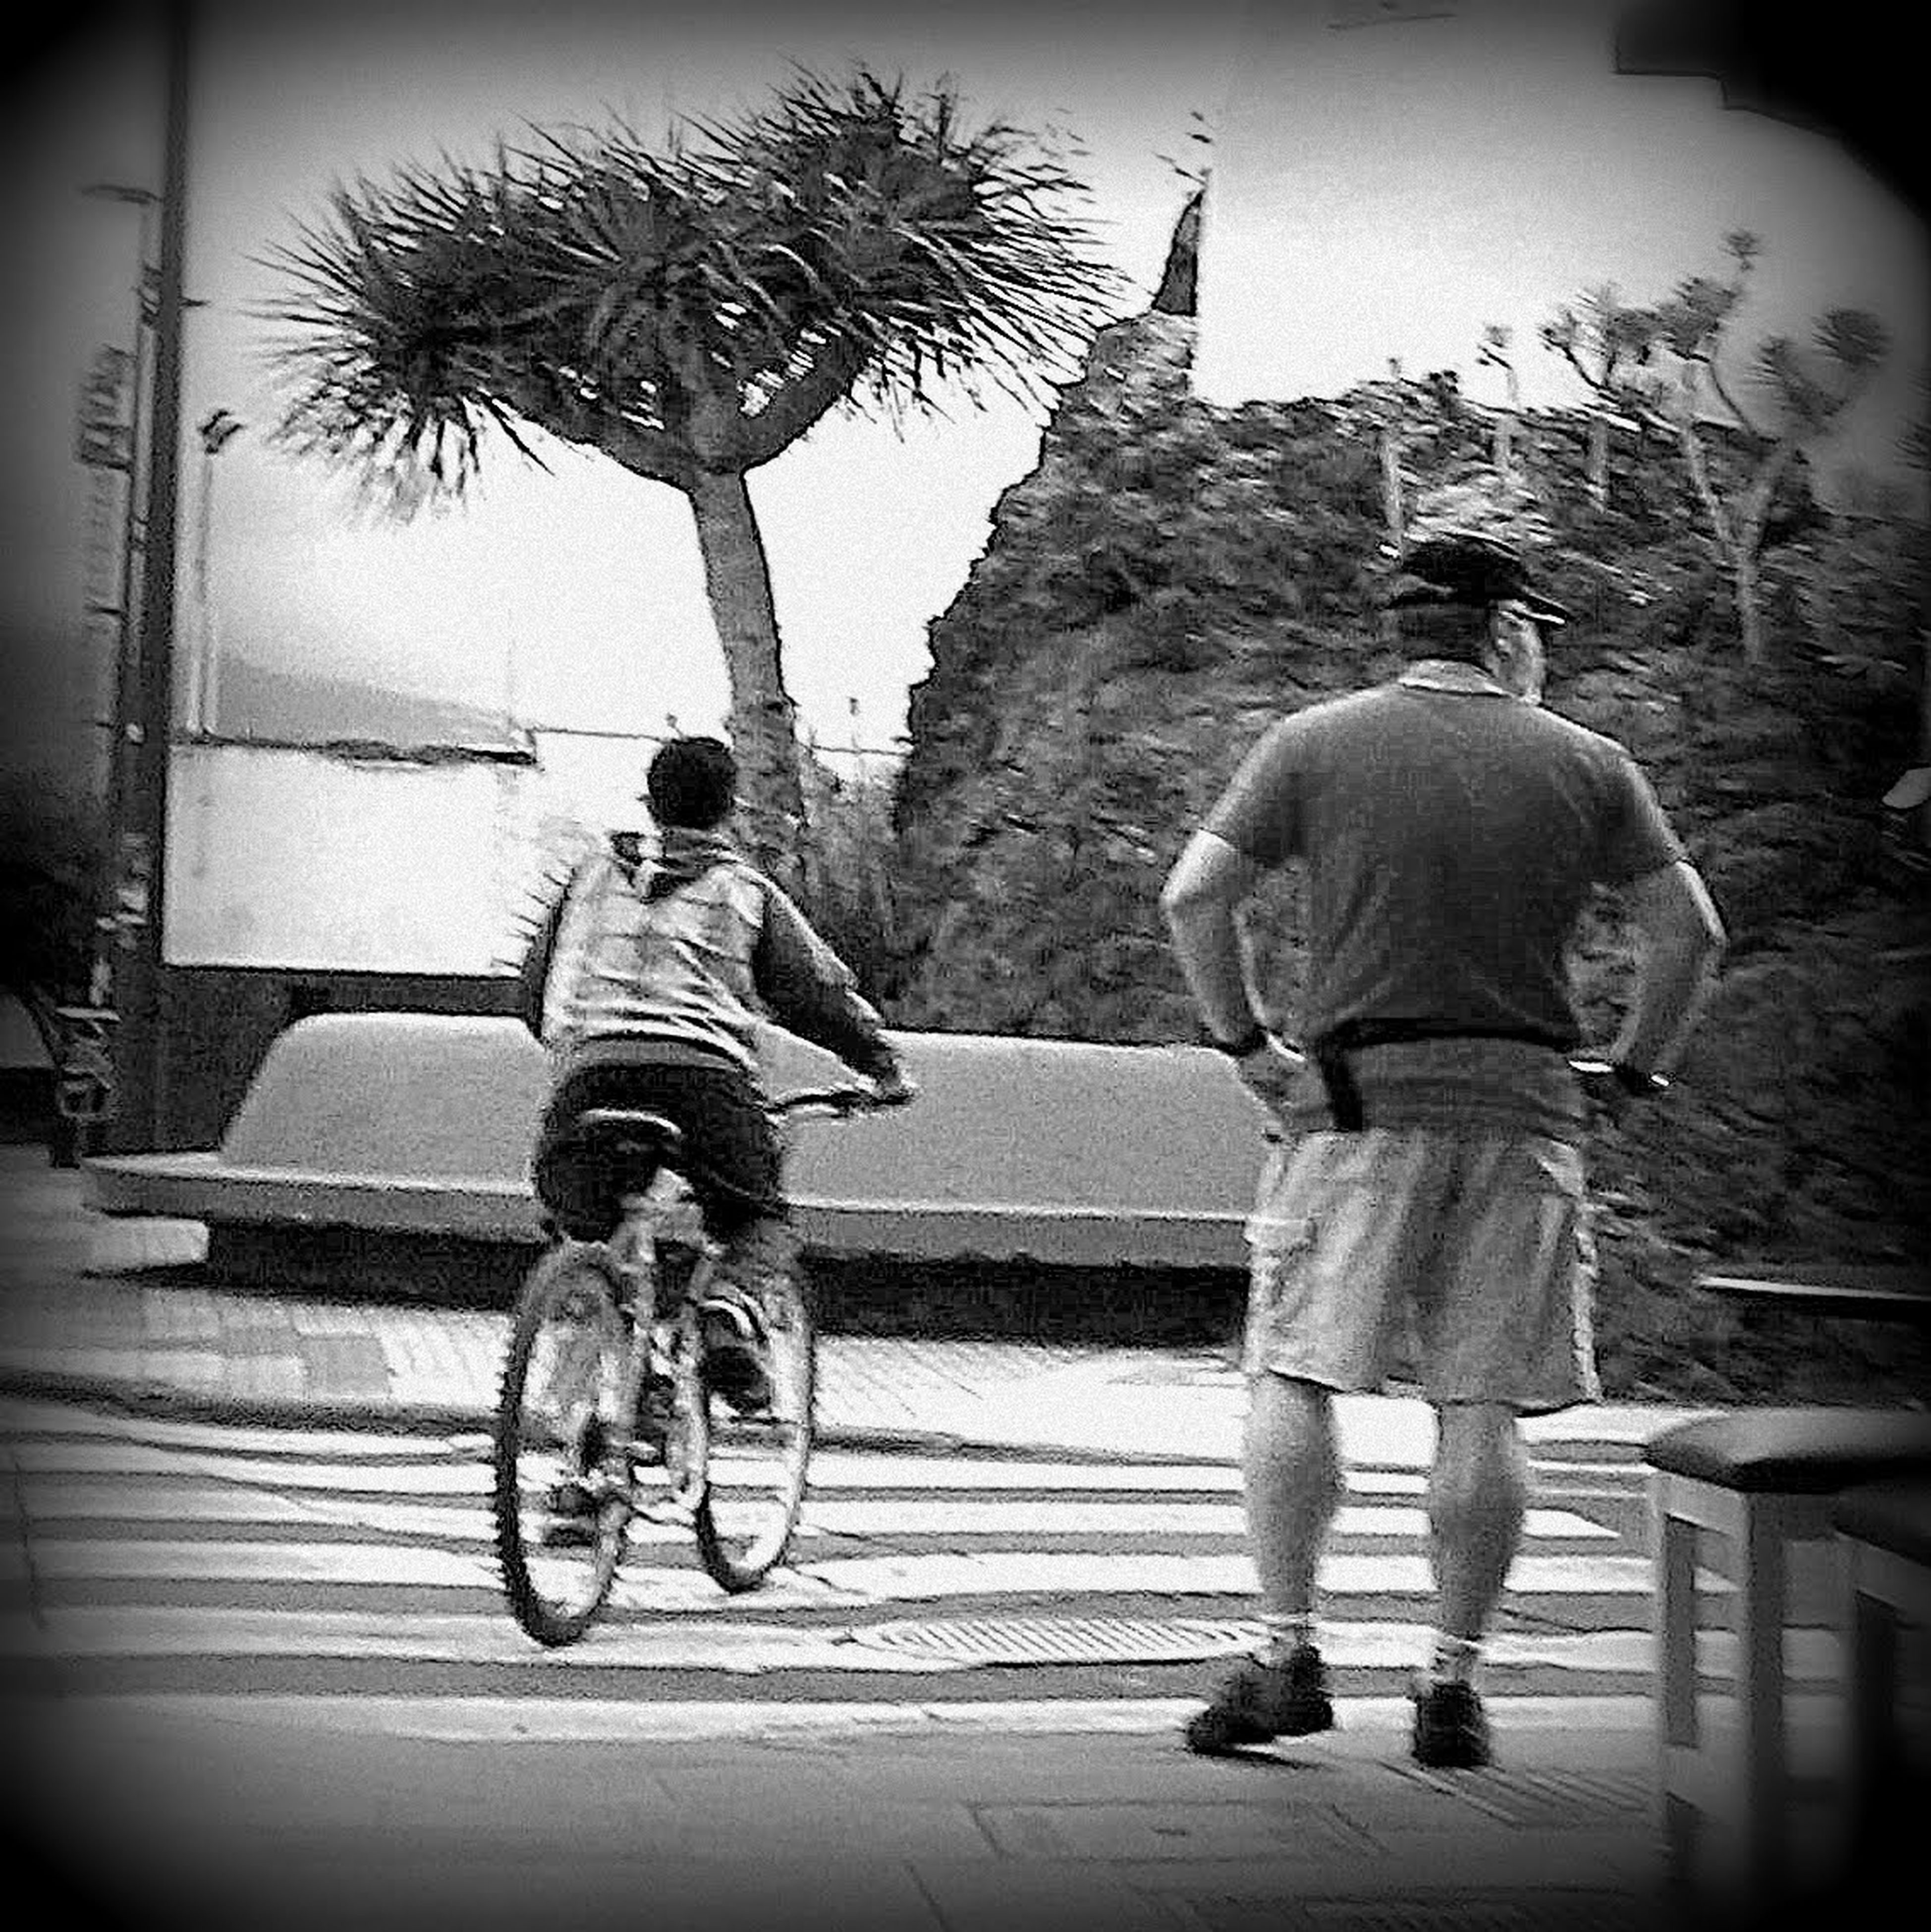 full length, bicycle, transportation, lifestyles, land vehicle, riding, mode of transport, tree, leisure activity, street, men, road, casual clothing, cycling, side view, shadow, rear view